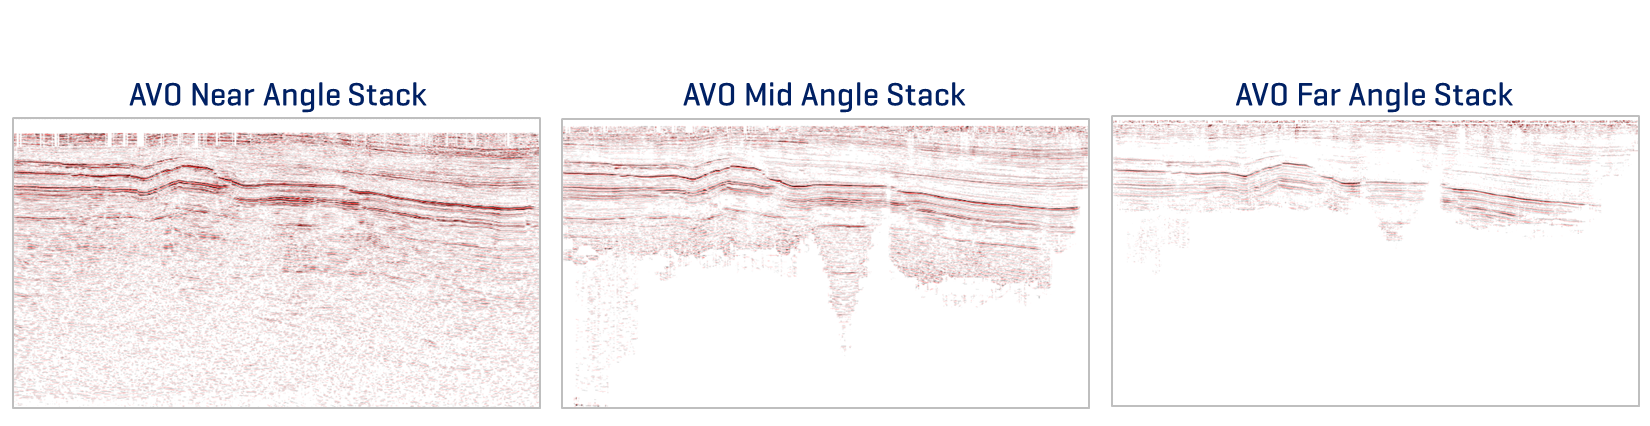 PT AVO Angle Stacks